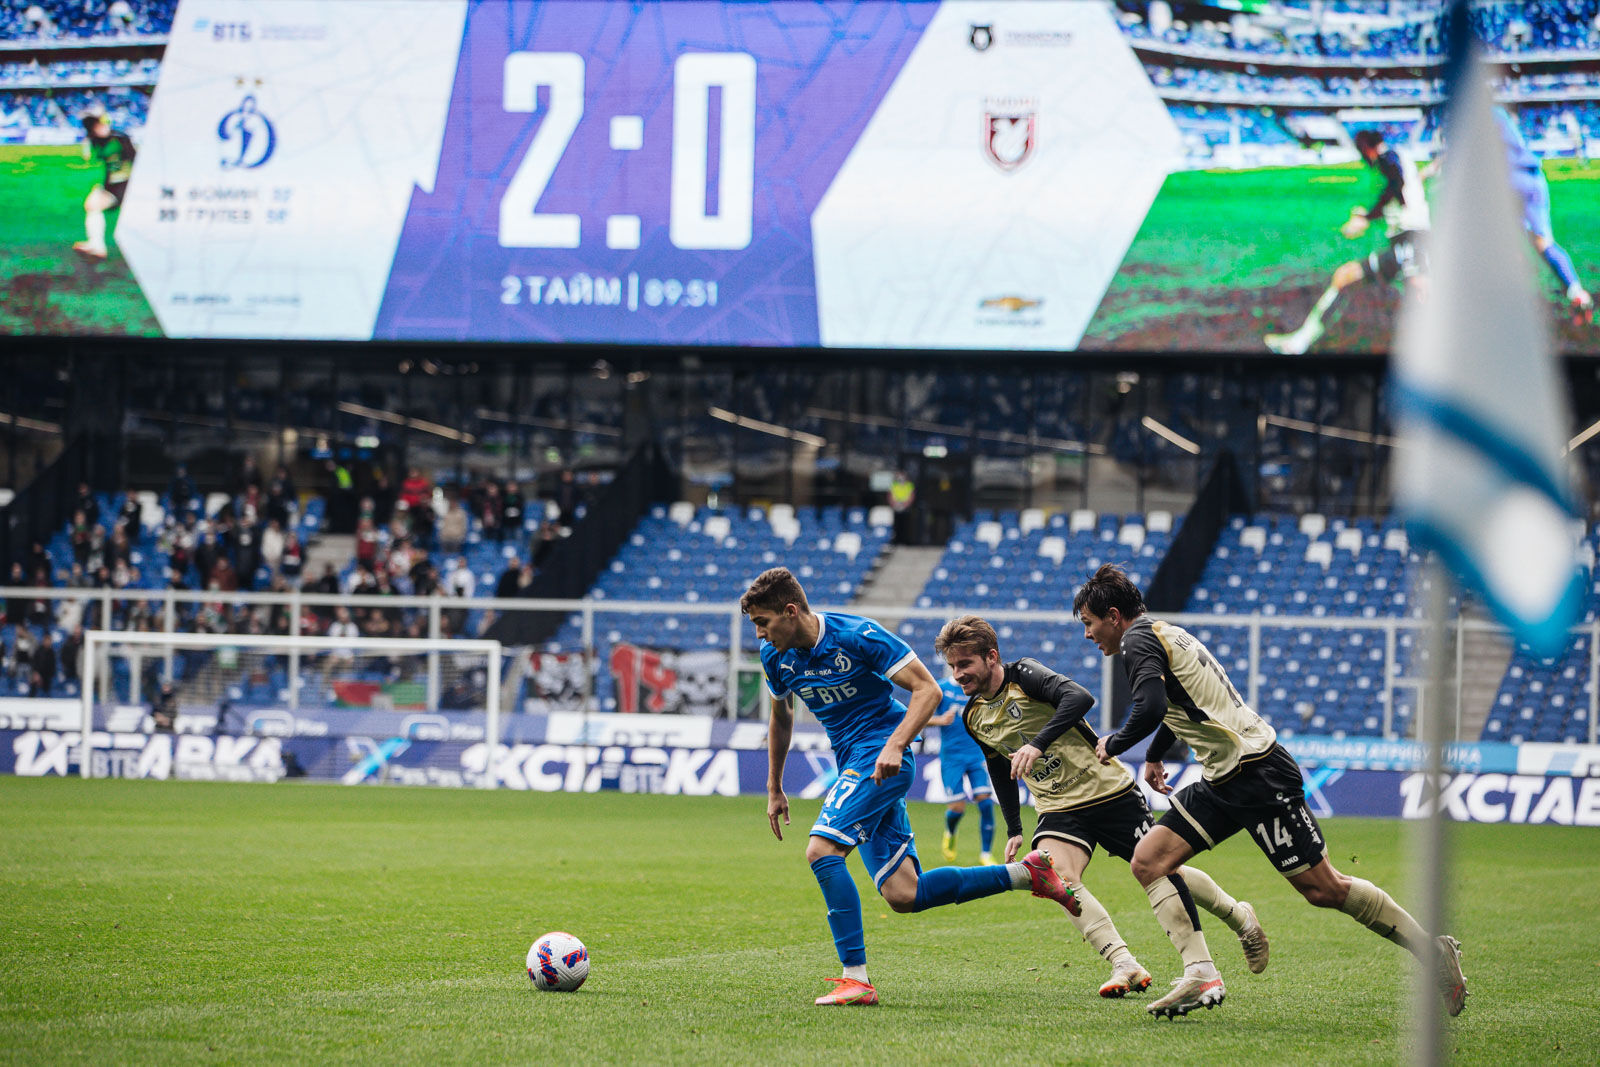 Photo gallery from the match against Rubin